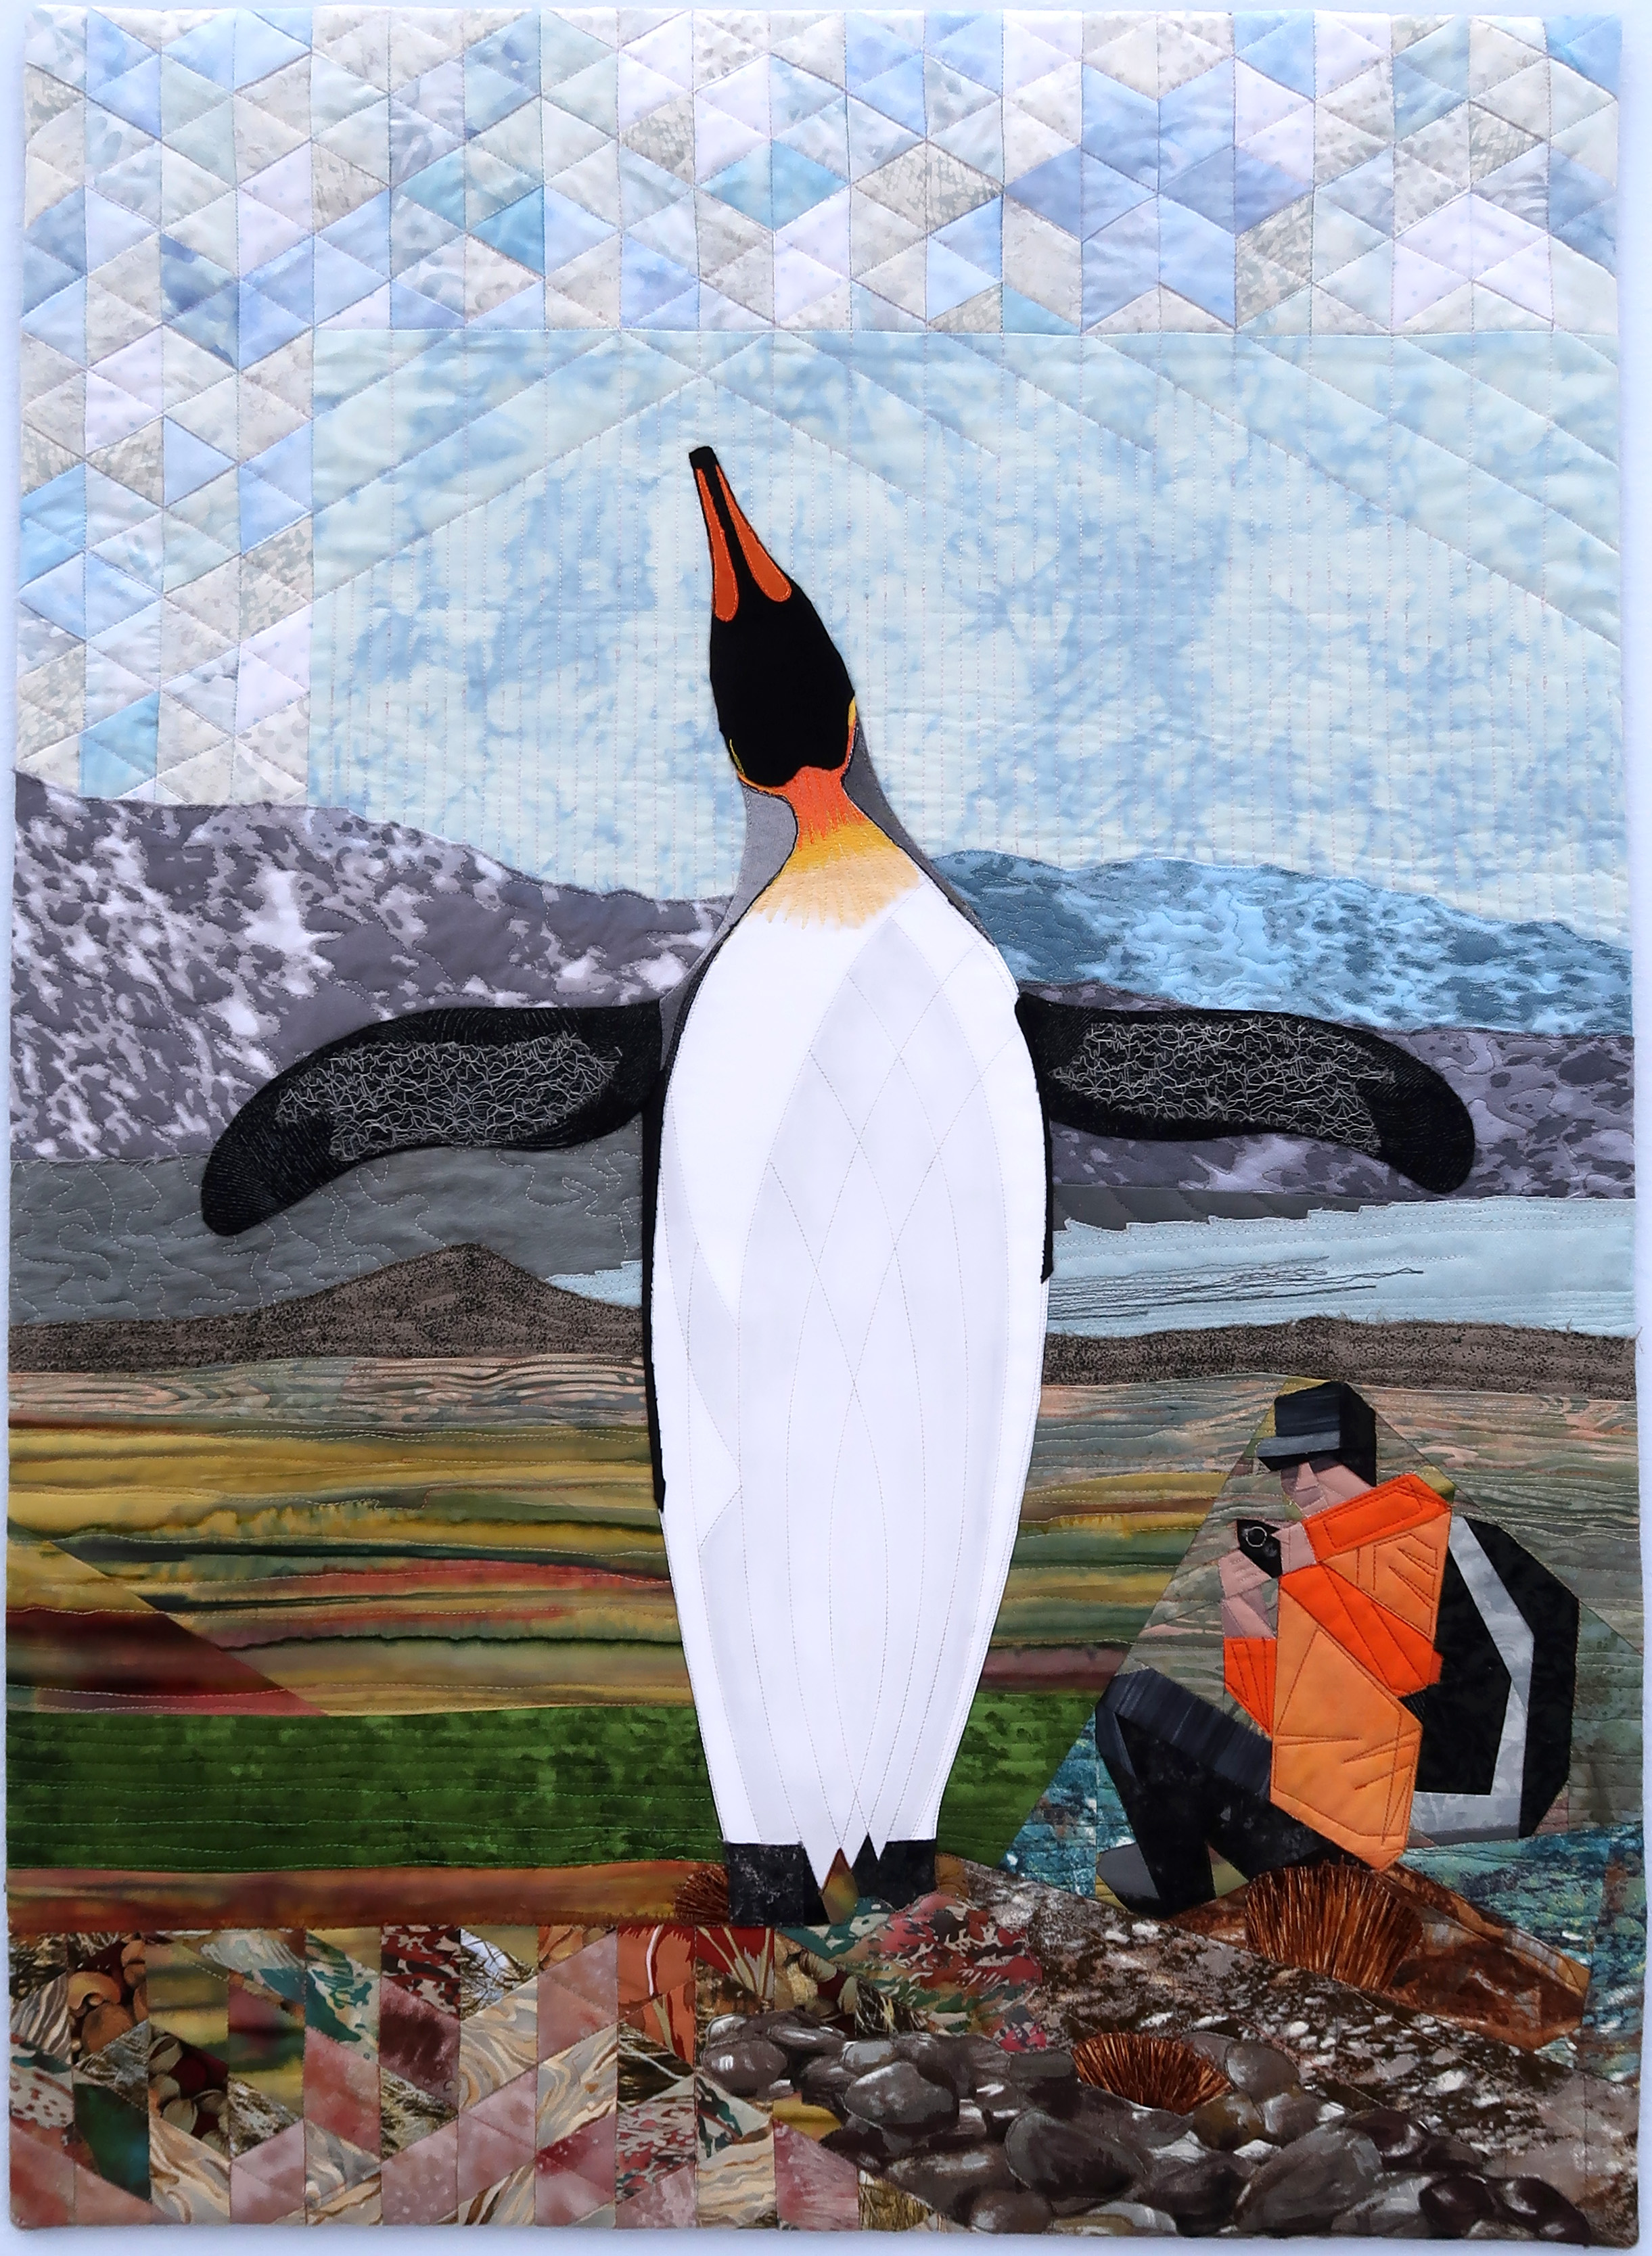 "Antarctic Ululation - 23"" x 32""Sometimes we're lucky enough to observe great moments in nature. In this instant, self and subject are one. Awareness that the air beneath your wings is the same air that trills in my throat. I see you - I am here!"